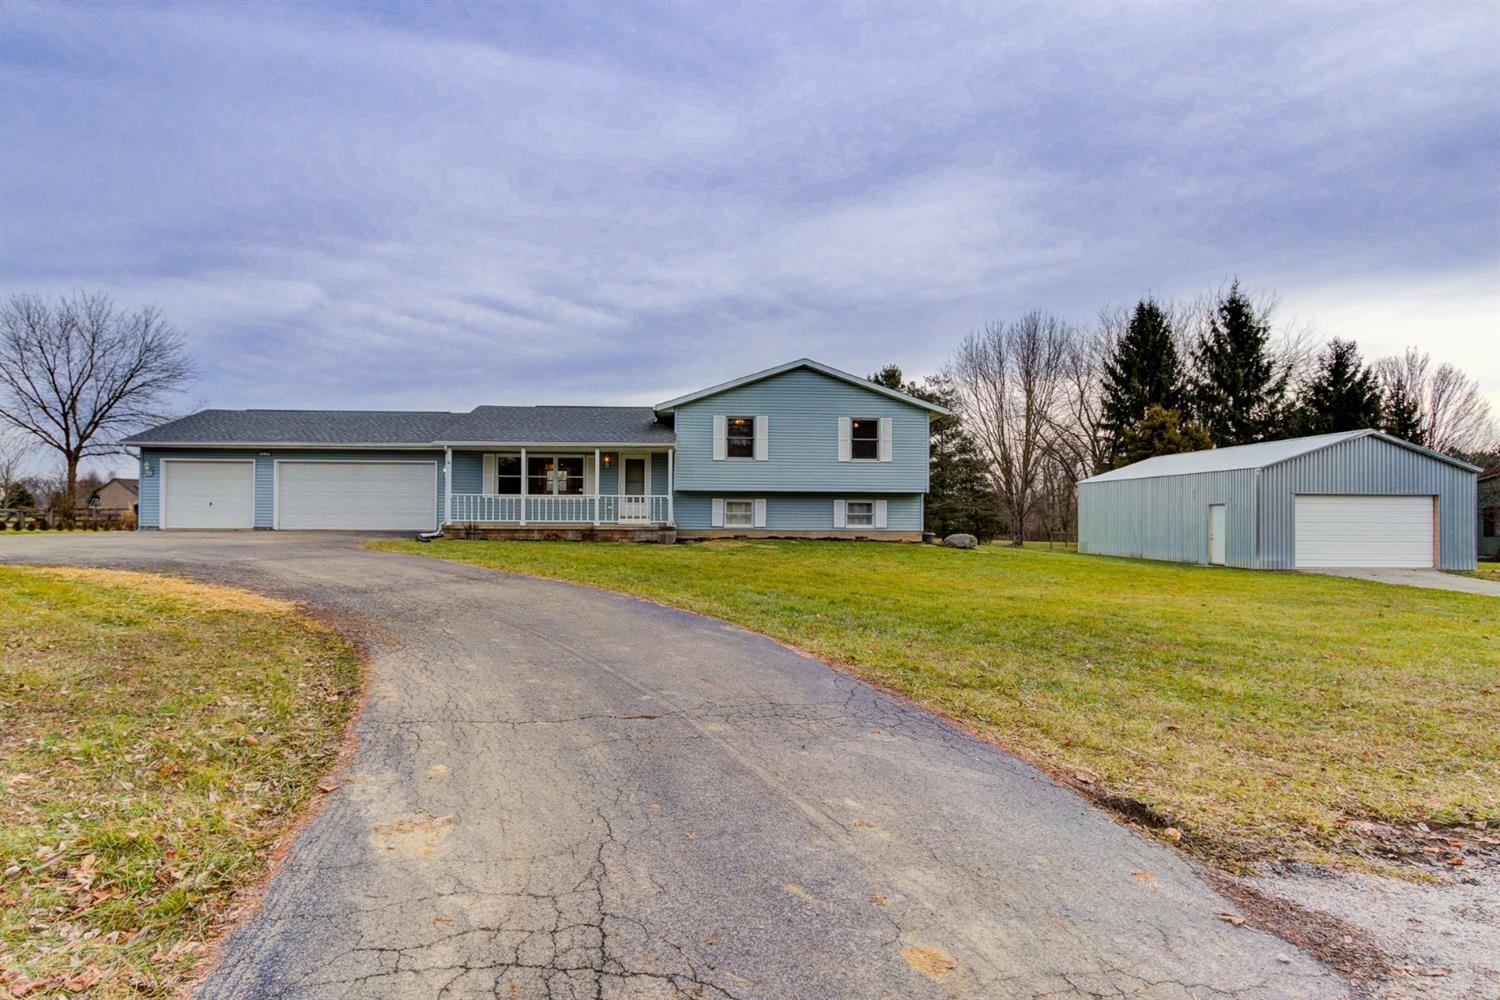 Property for sale at 9188 Old Stage Road, Wayne Twp,  OH 45068